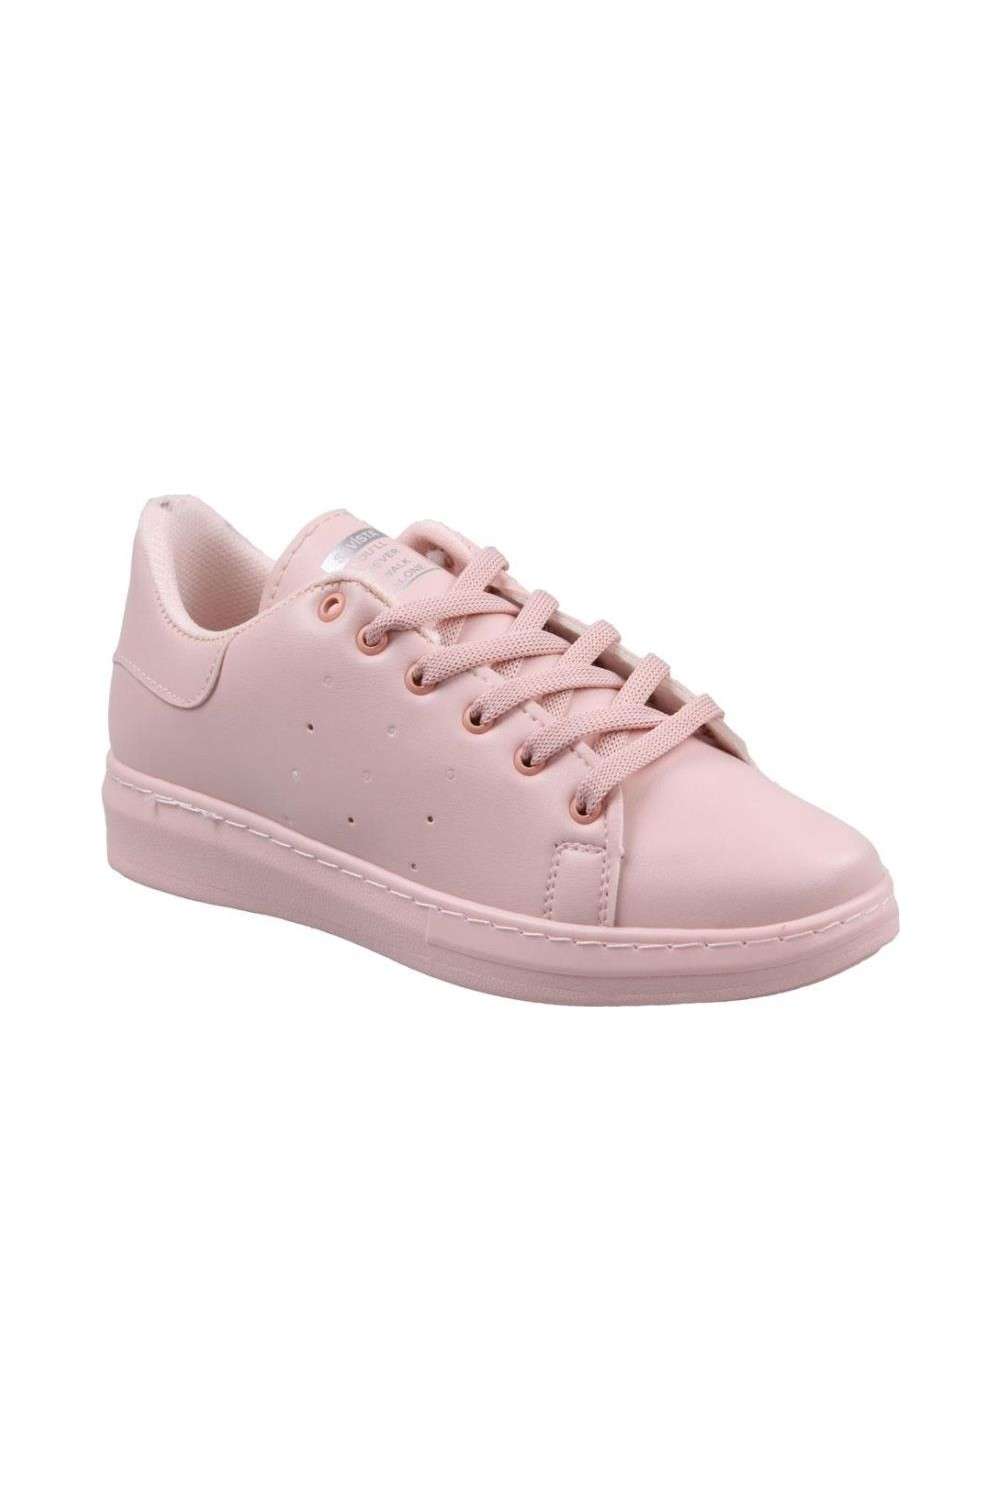 City Women's Sports Shoes Sneakers Powder Day